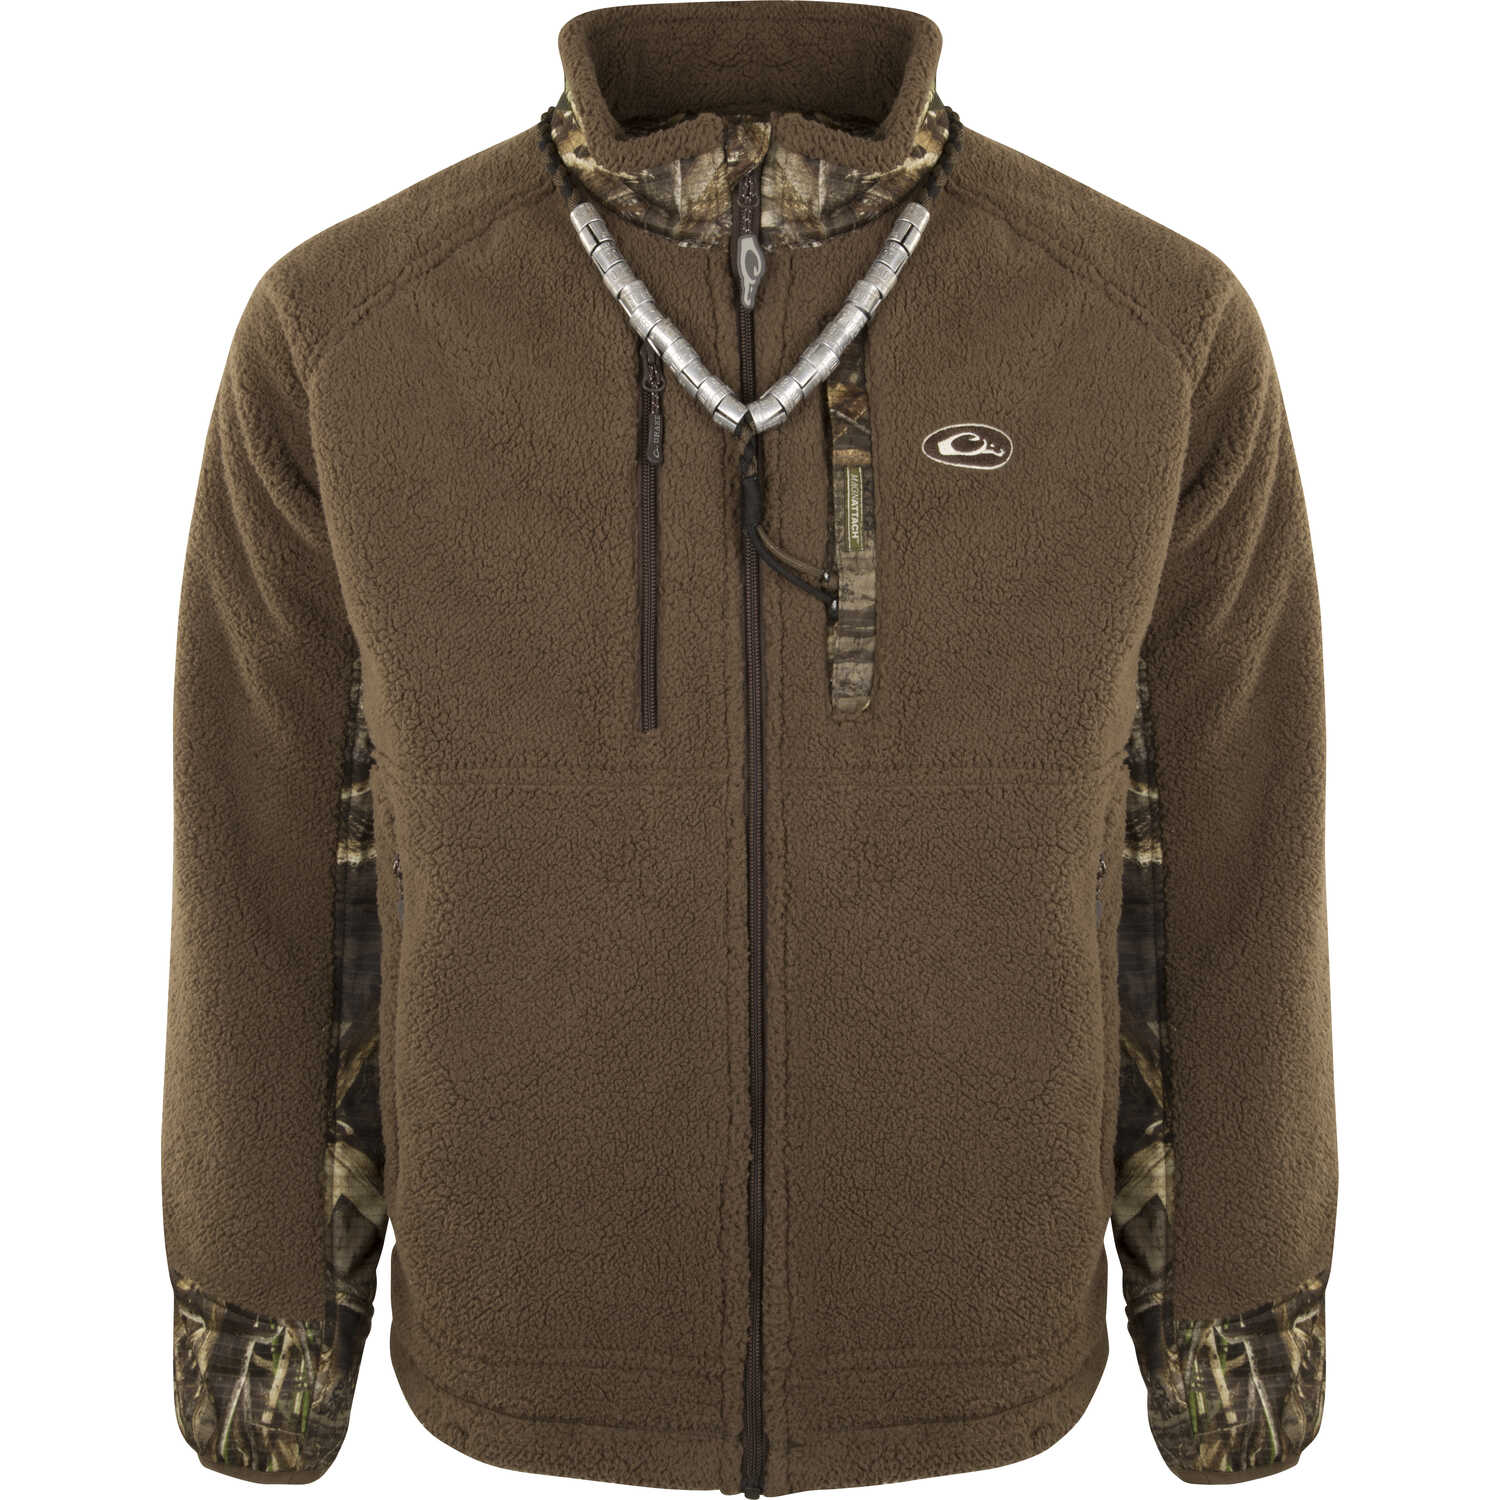 Drake  MST Sherpa  Small  Men's  Long Sleeve  Full-Zip  Realtree Max-5  Liner